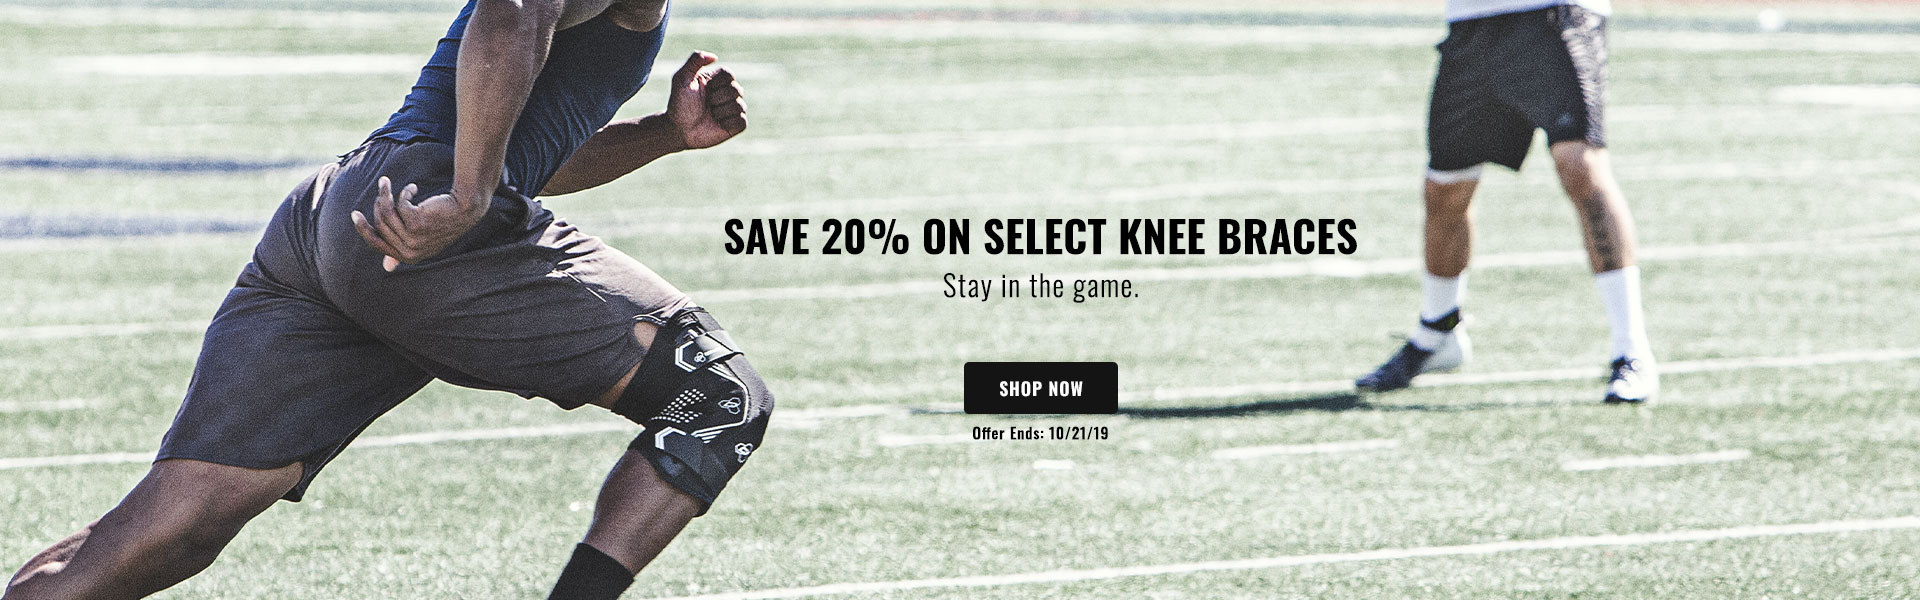 Save 20% on Select Knee Braces